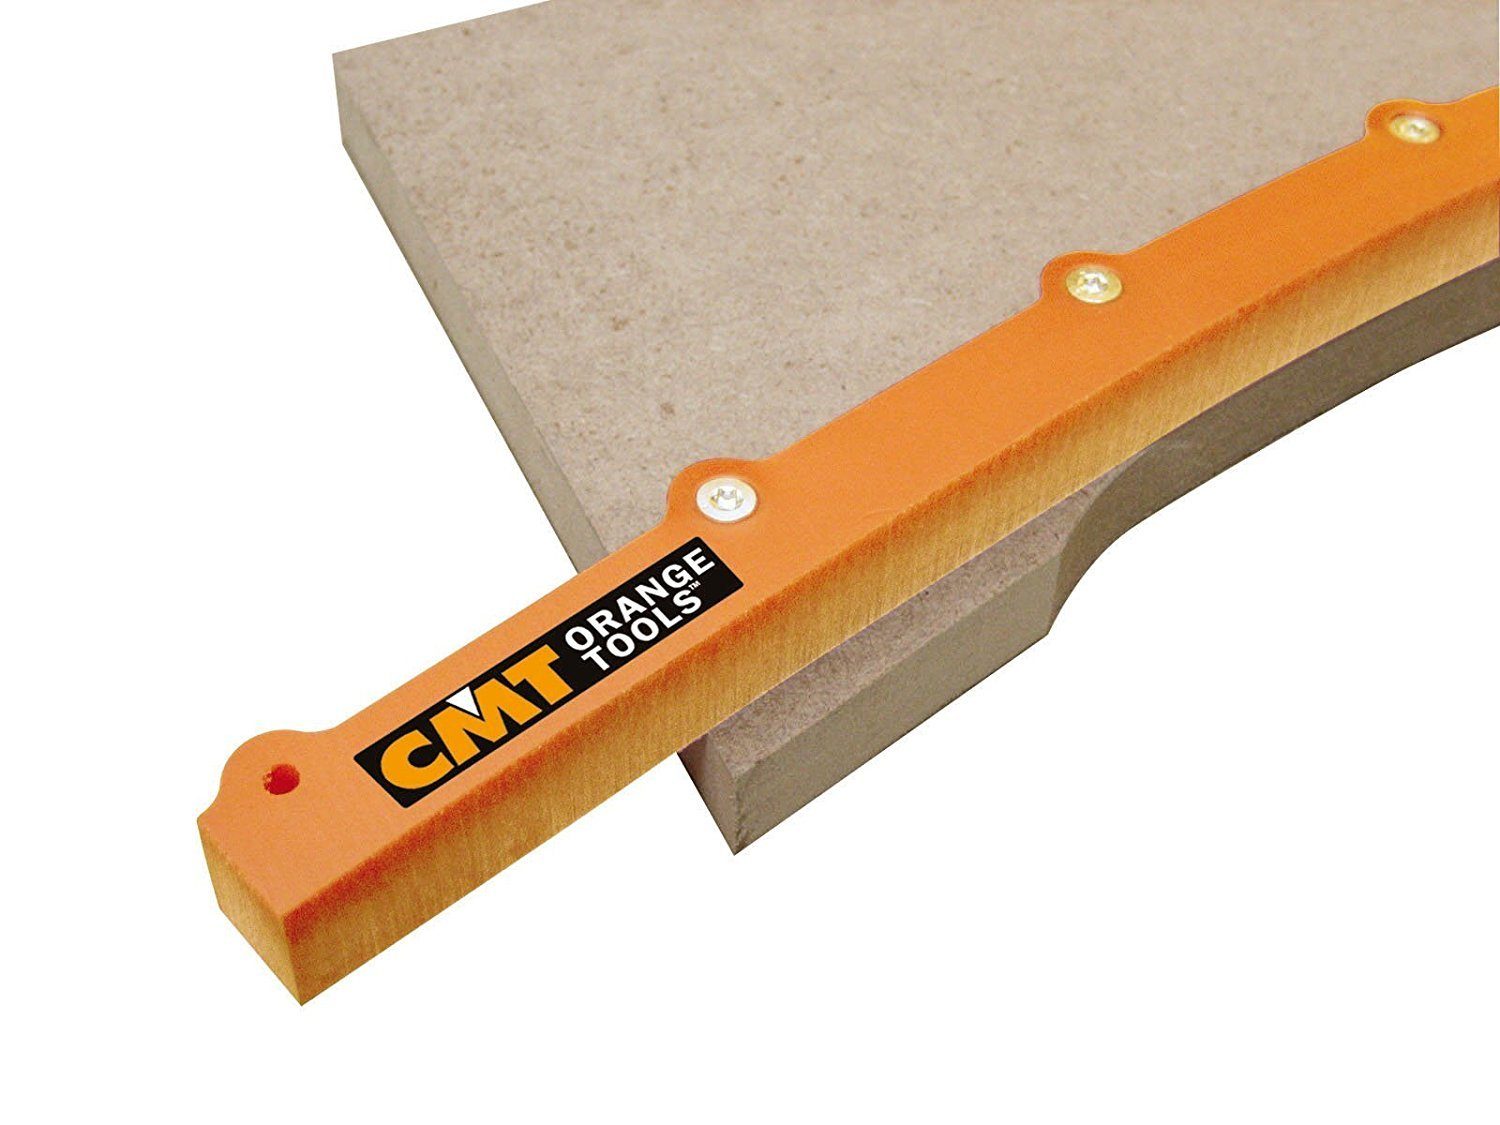 CMT TMP-1200 Flexible Template for Curved and Arched Routing, 15/32 X 15/32-Inch